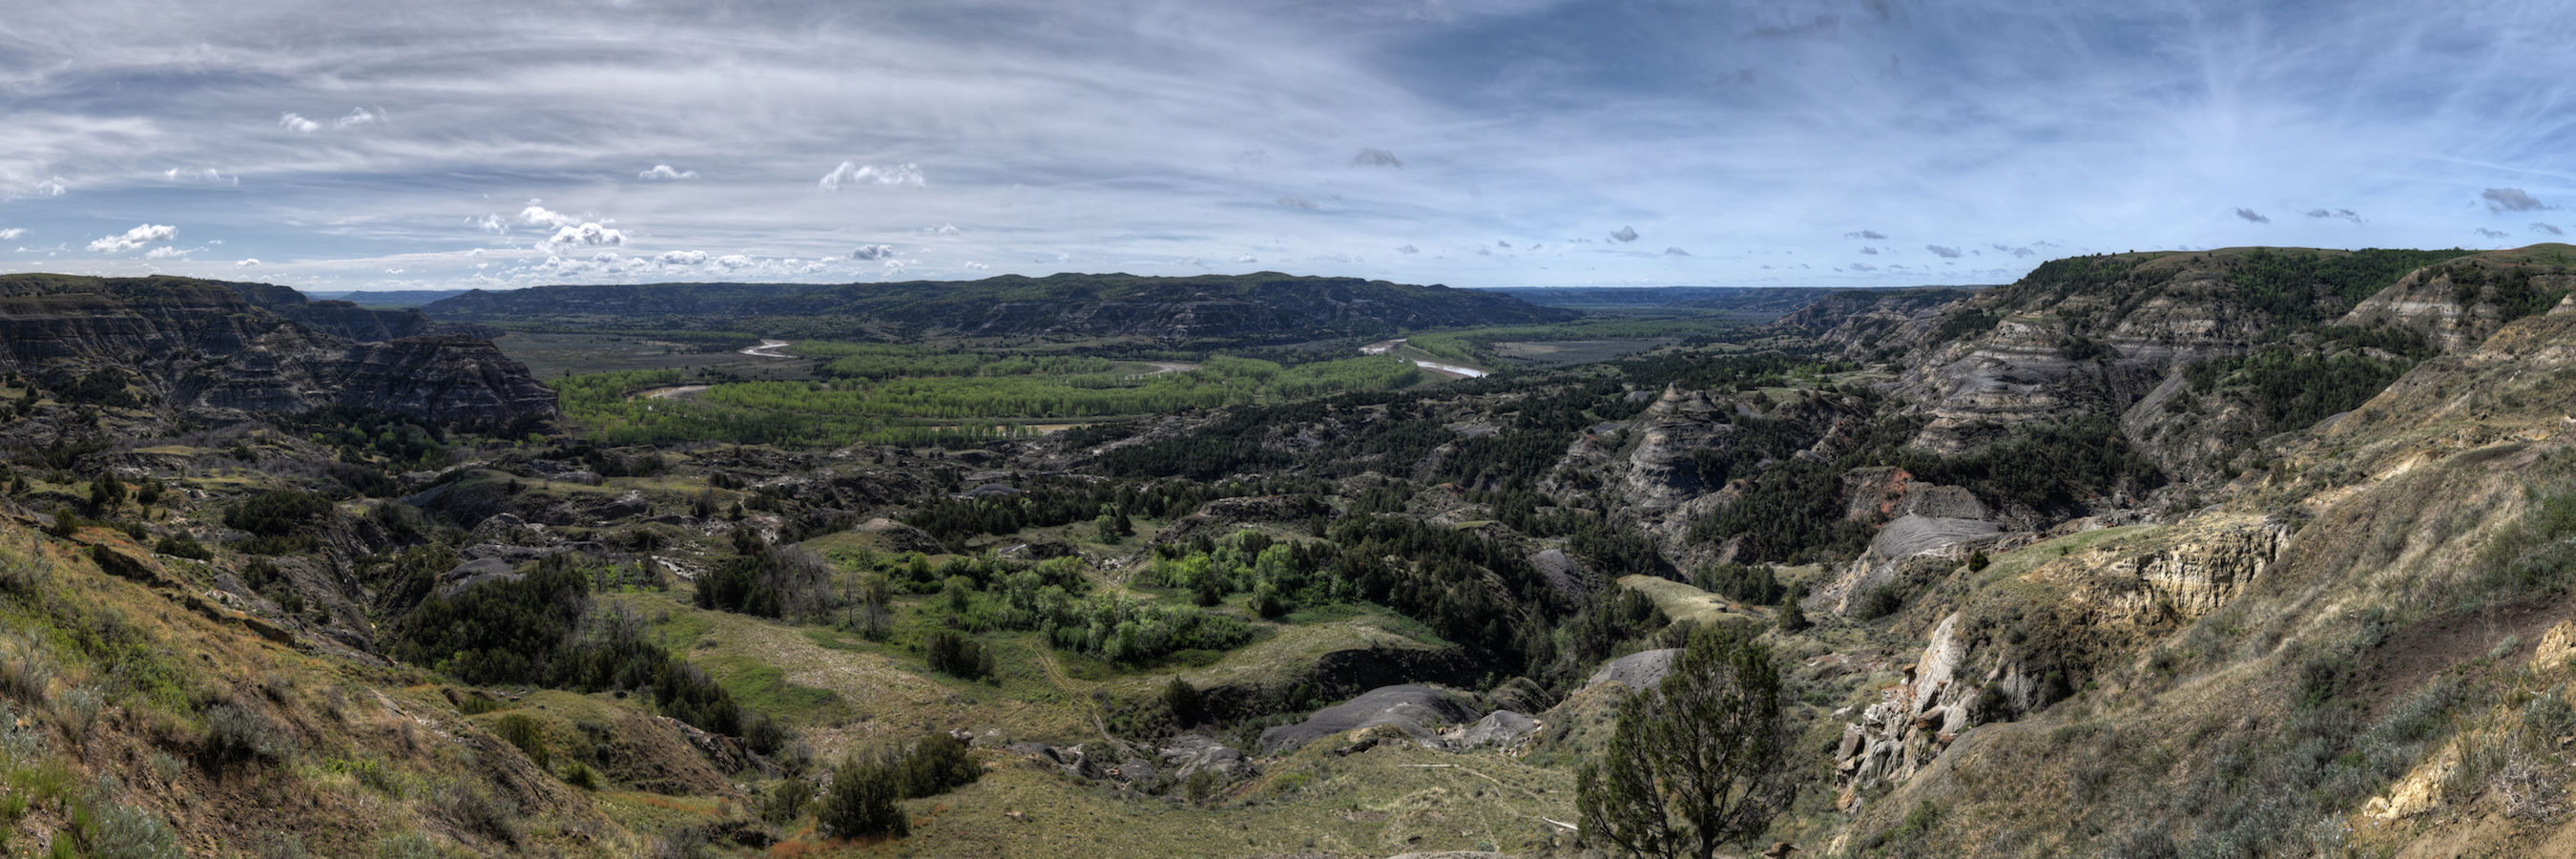 Oxbow Overlook, Theodore Roosevelt National Park